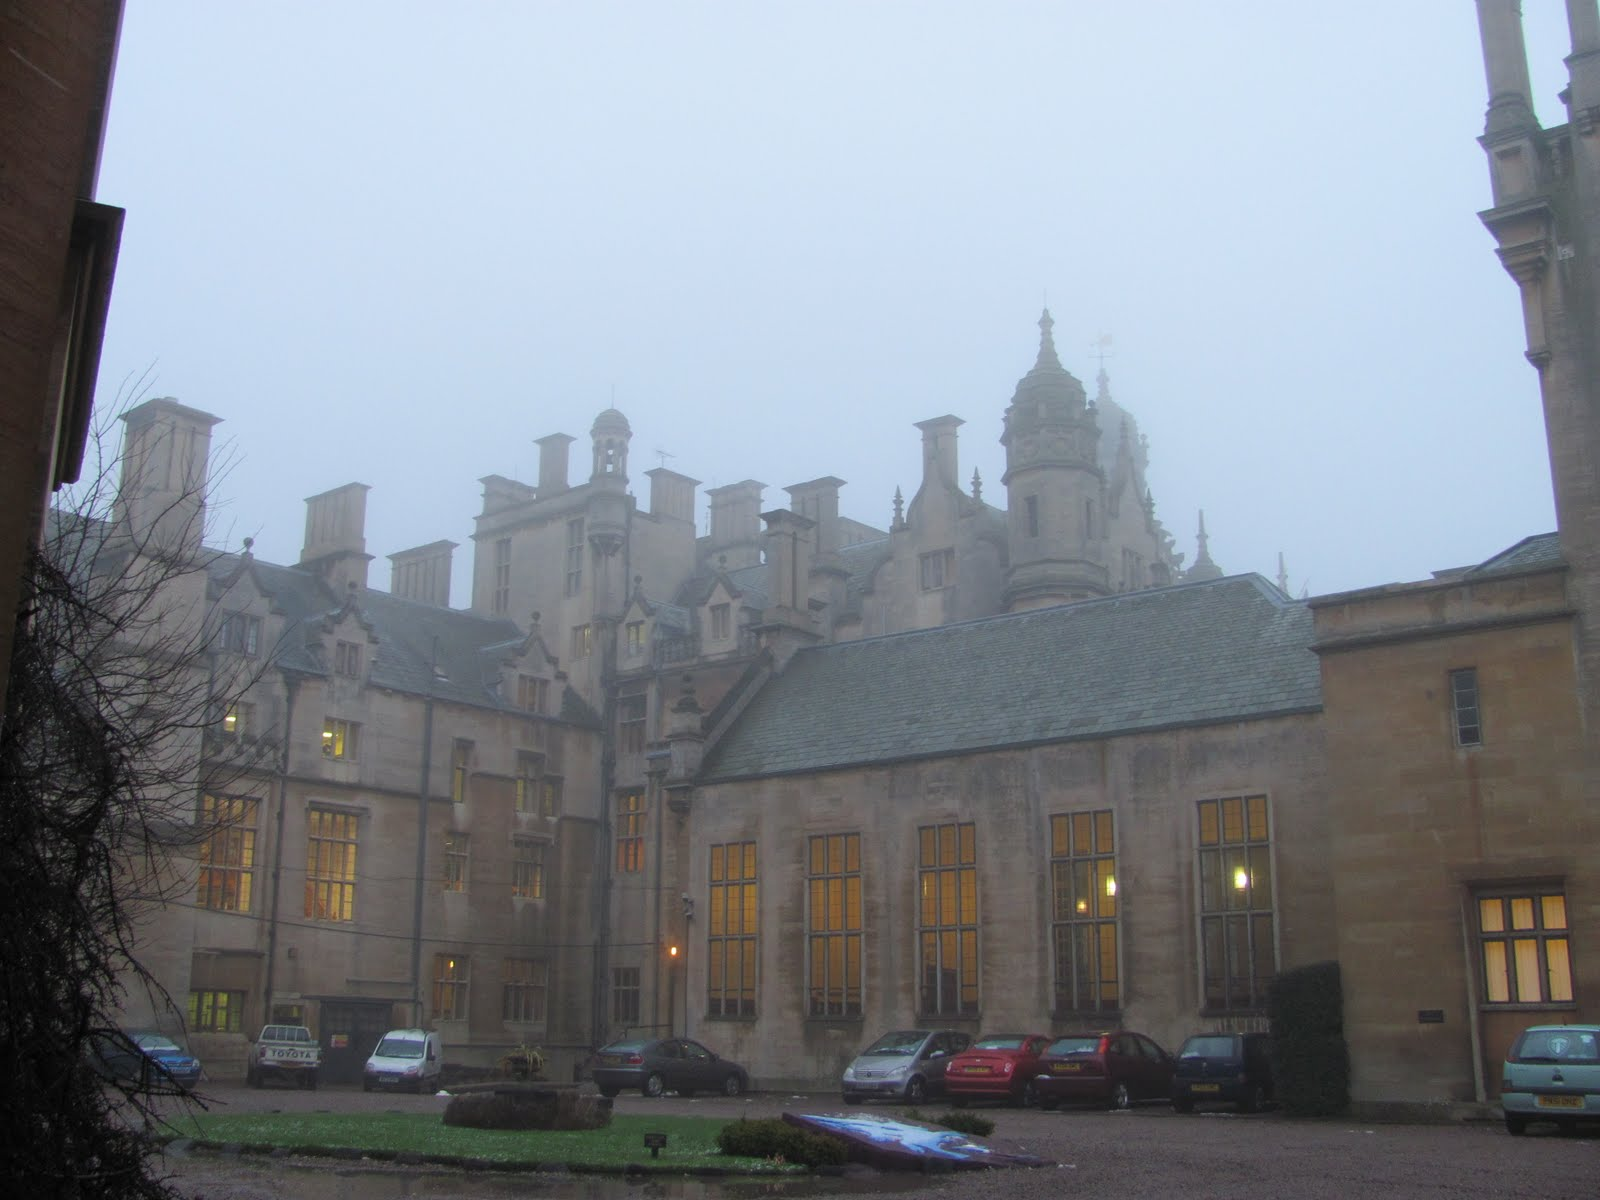 Harlaxton College Carriage House